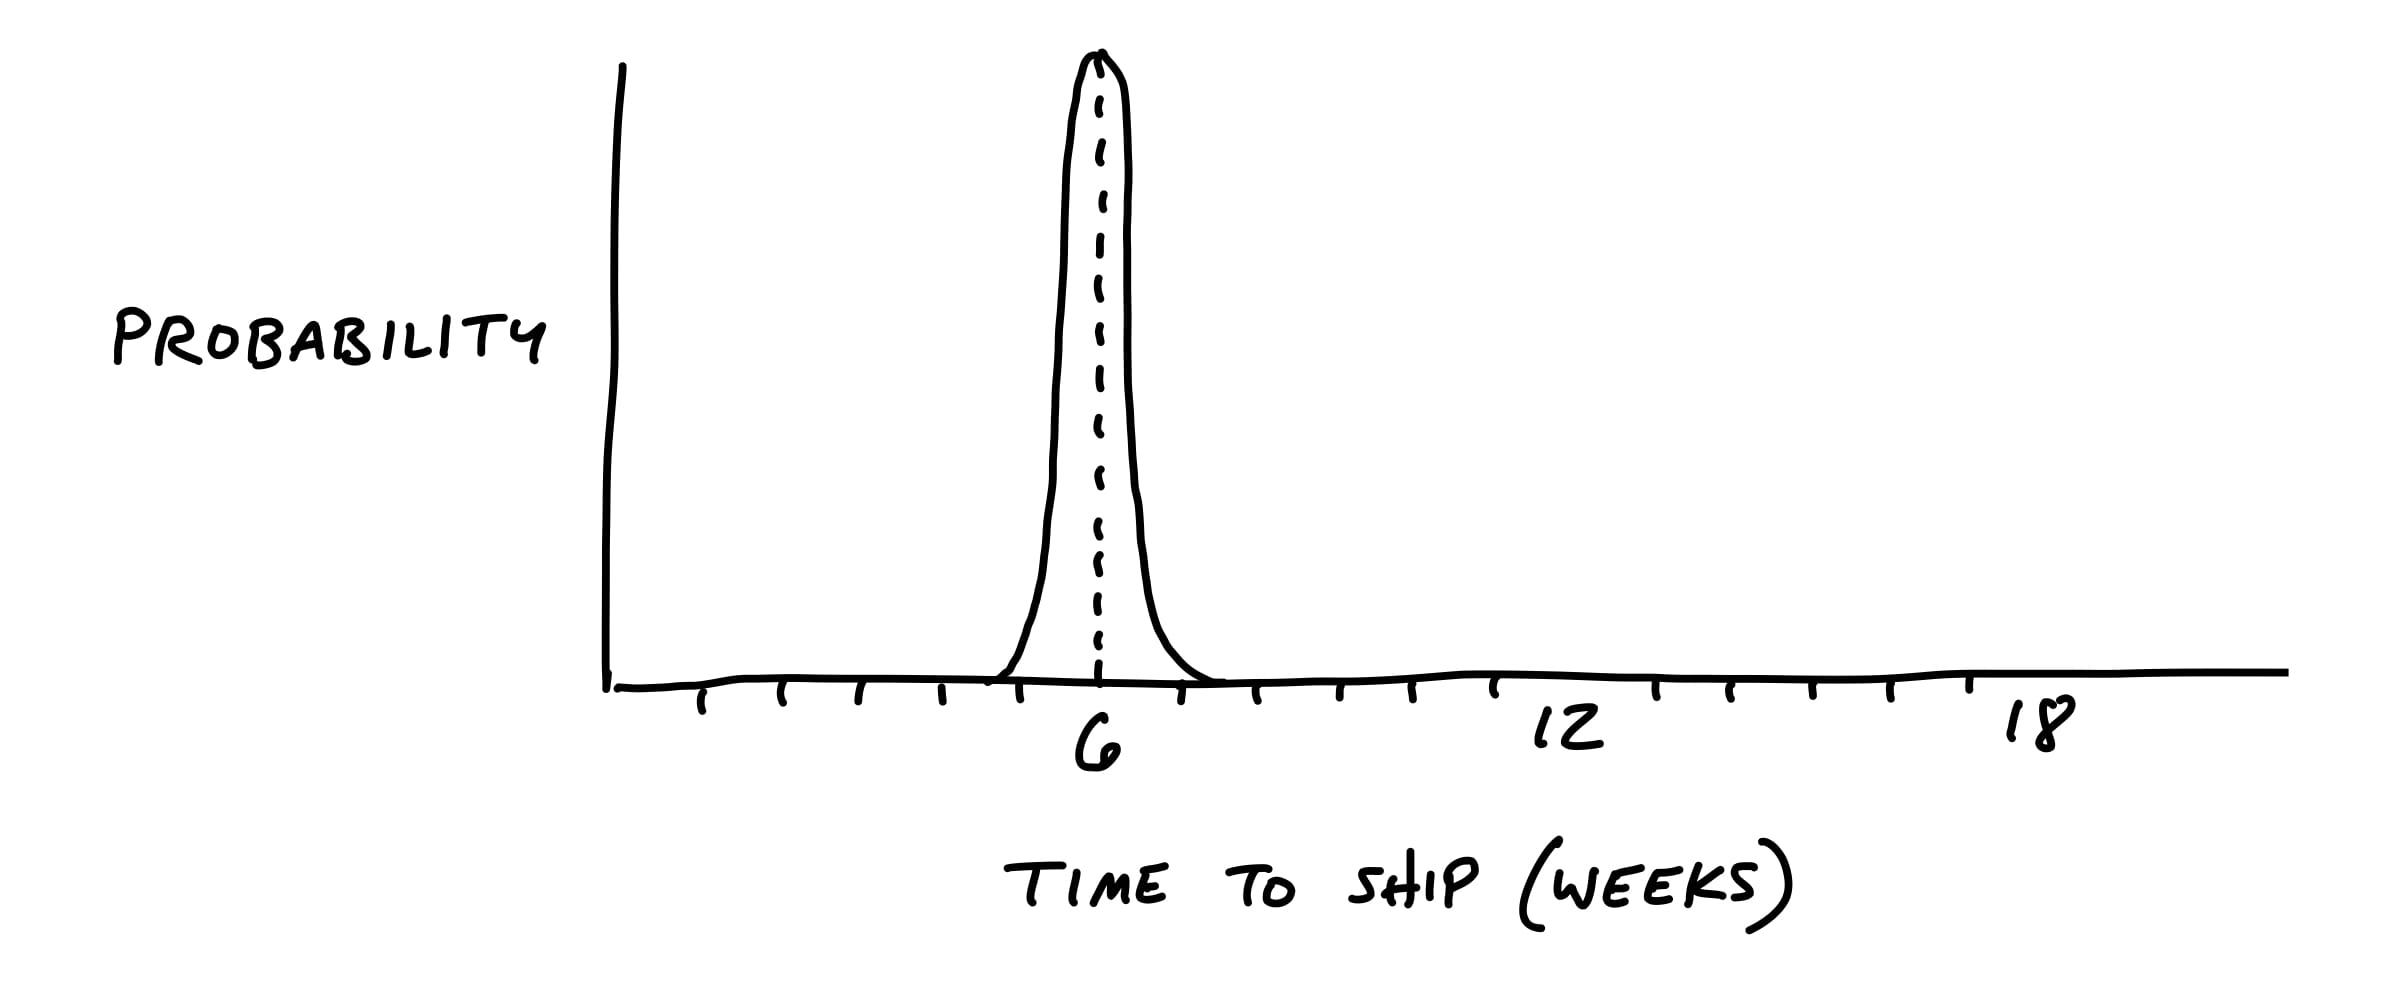 Drawing of a thin tailed probability distribution. The Y axis is probability and the X axis is Time to Ship in Weeks. The X axis extends from zero weeks to 18 weeks. There is a single spike at 6 weeks shaped like a normal distribution, extending slightly to the left and right at the bottom of the curve. The left edge only extends to five weeks and the right edge to seven weeks.